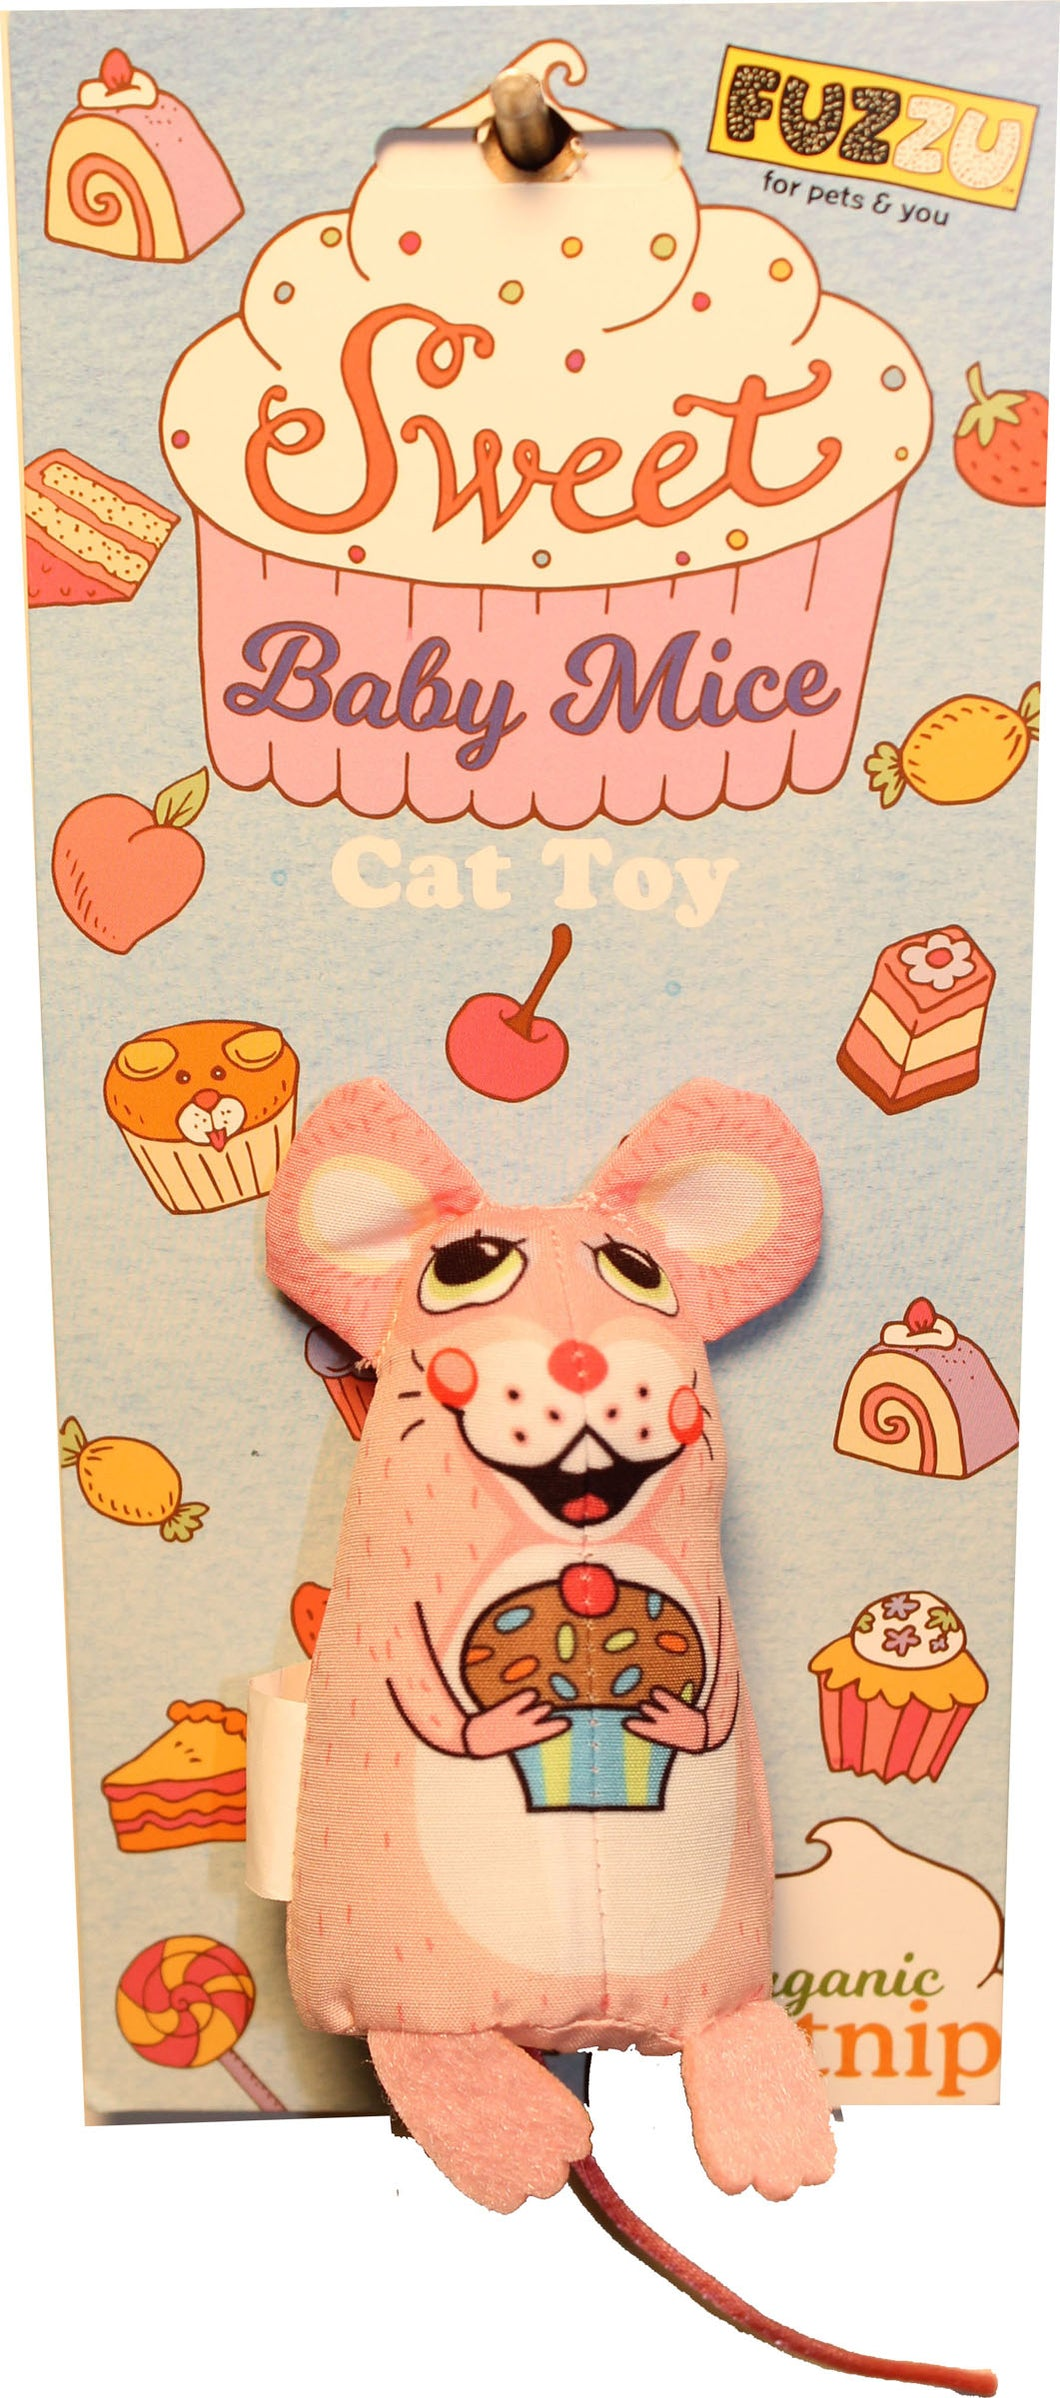 Sweet Baby Mice Cupcake Mouse Cat Toy